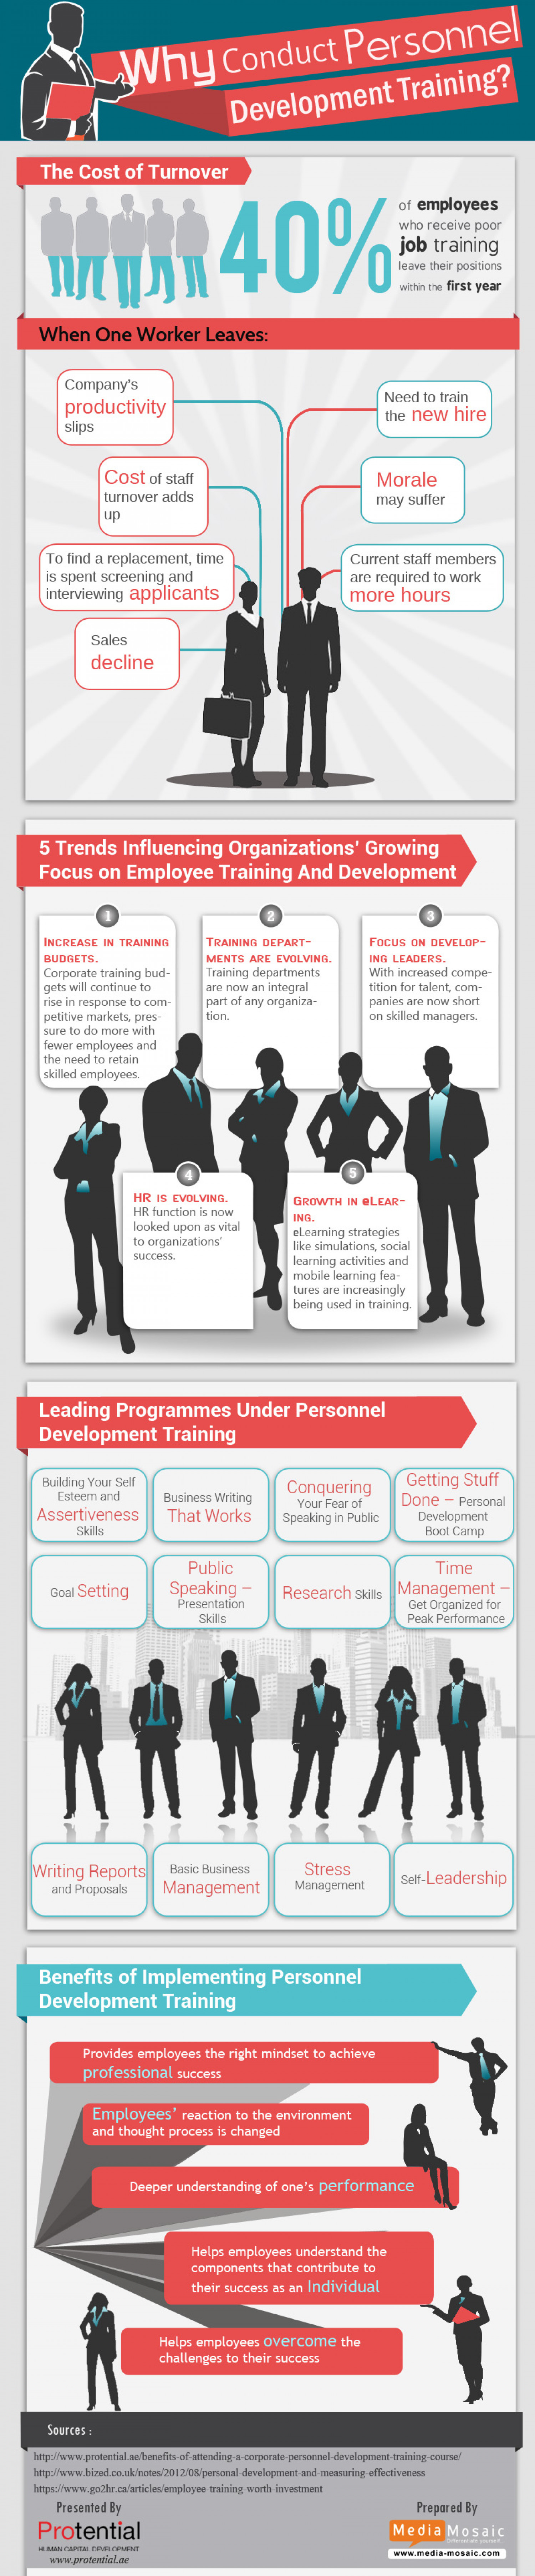 Why Conduct Personnel Development Training [Infographic] Infographic